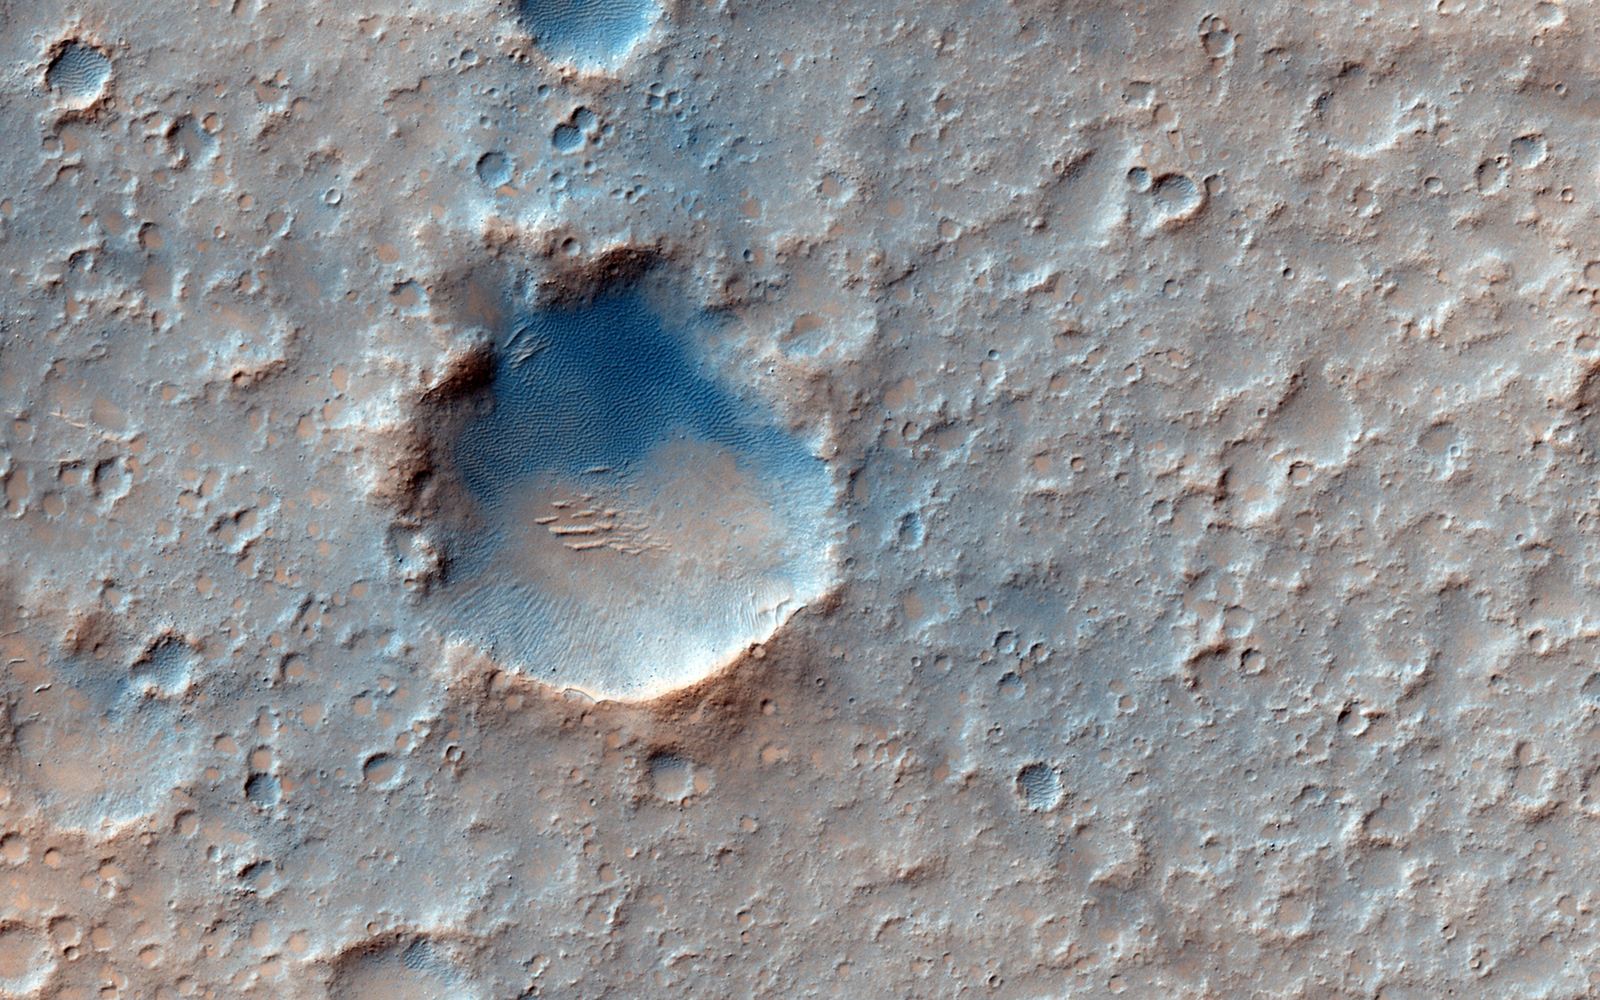 Gusev Crater imaged from orbit by the Mars Reconnaissance Orbiter HiRISE camera.